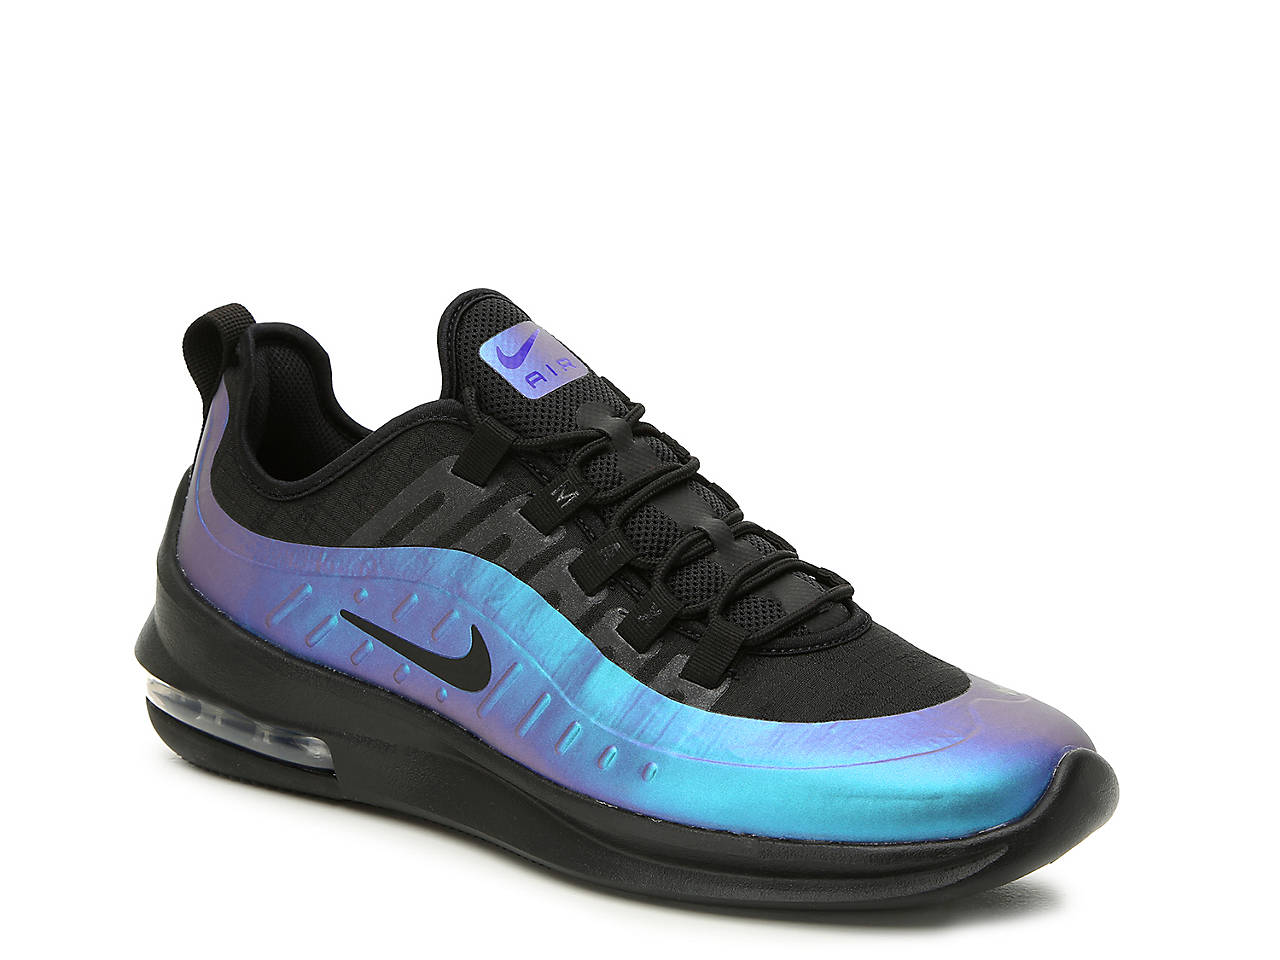 timeless design 0efac de289 Nike. Air Max Axis Sneaker - Men s